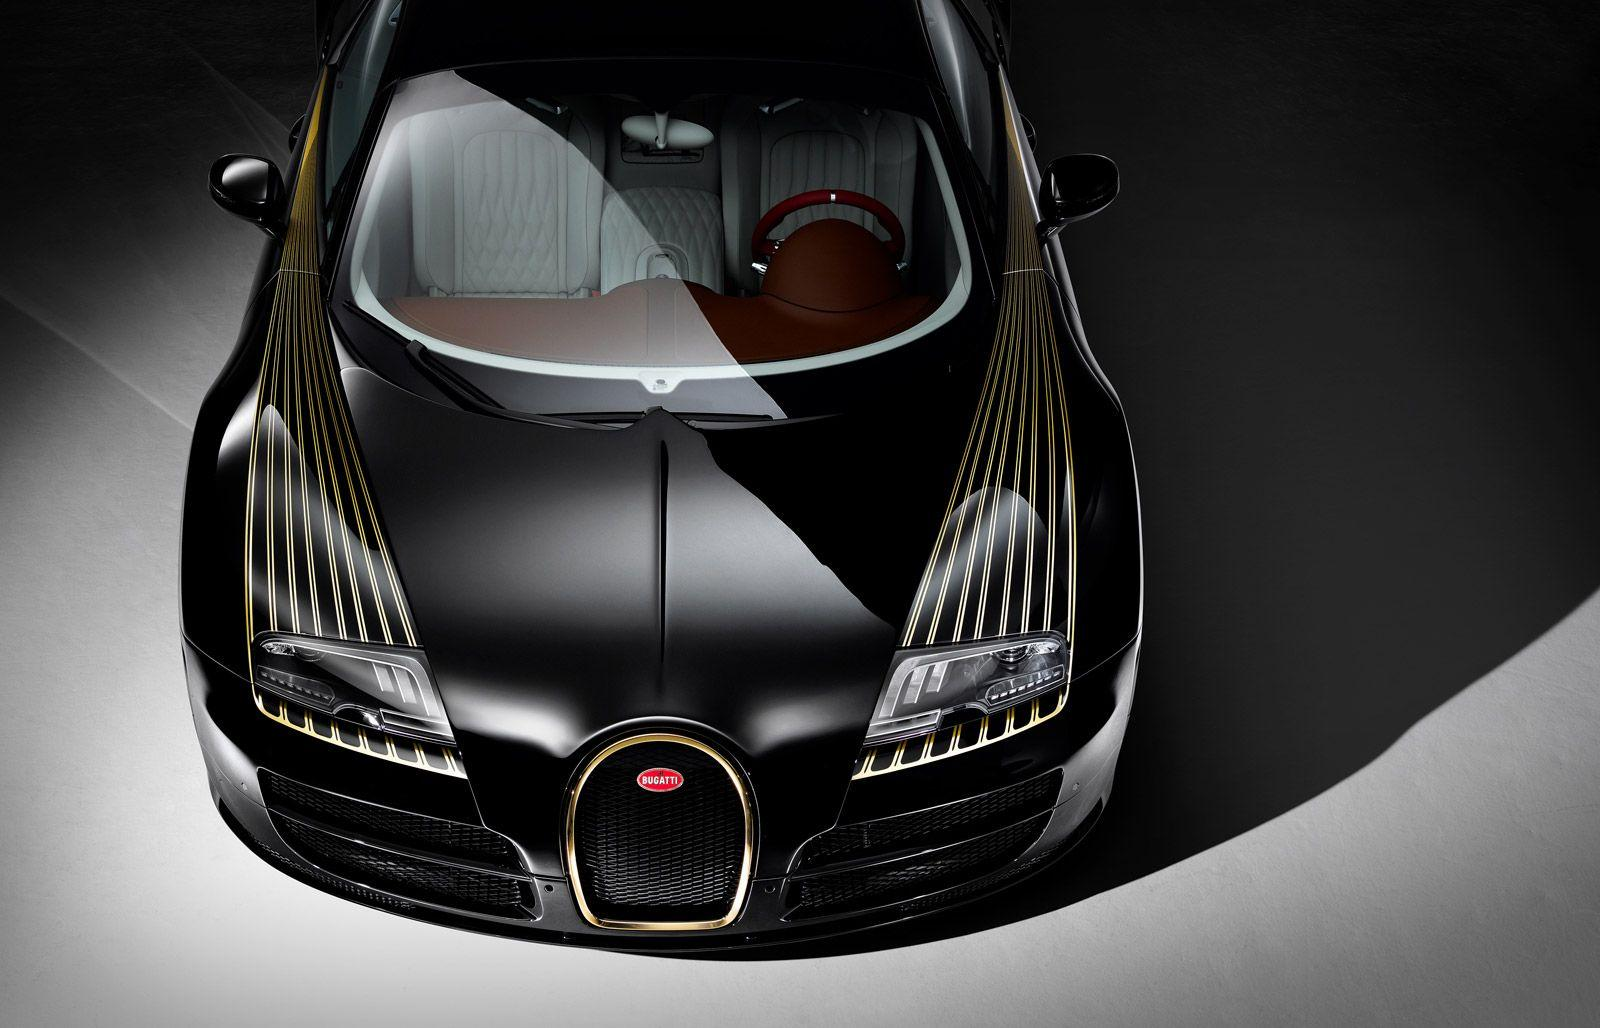 Bugatti's Next Car To Offer 1,500 HP, Outpace Veyron Super Sport: Report